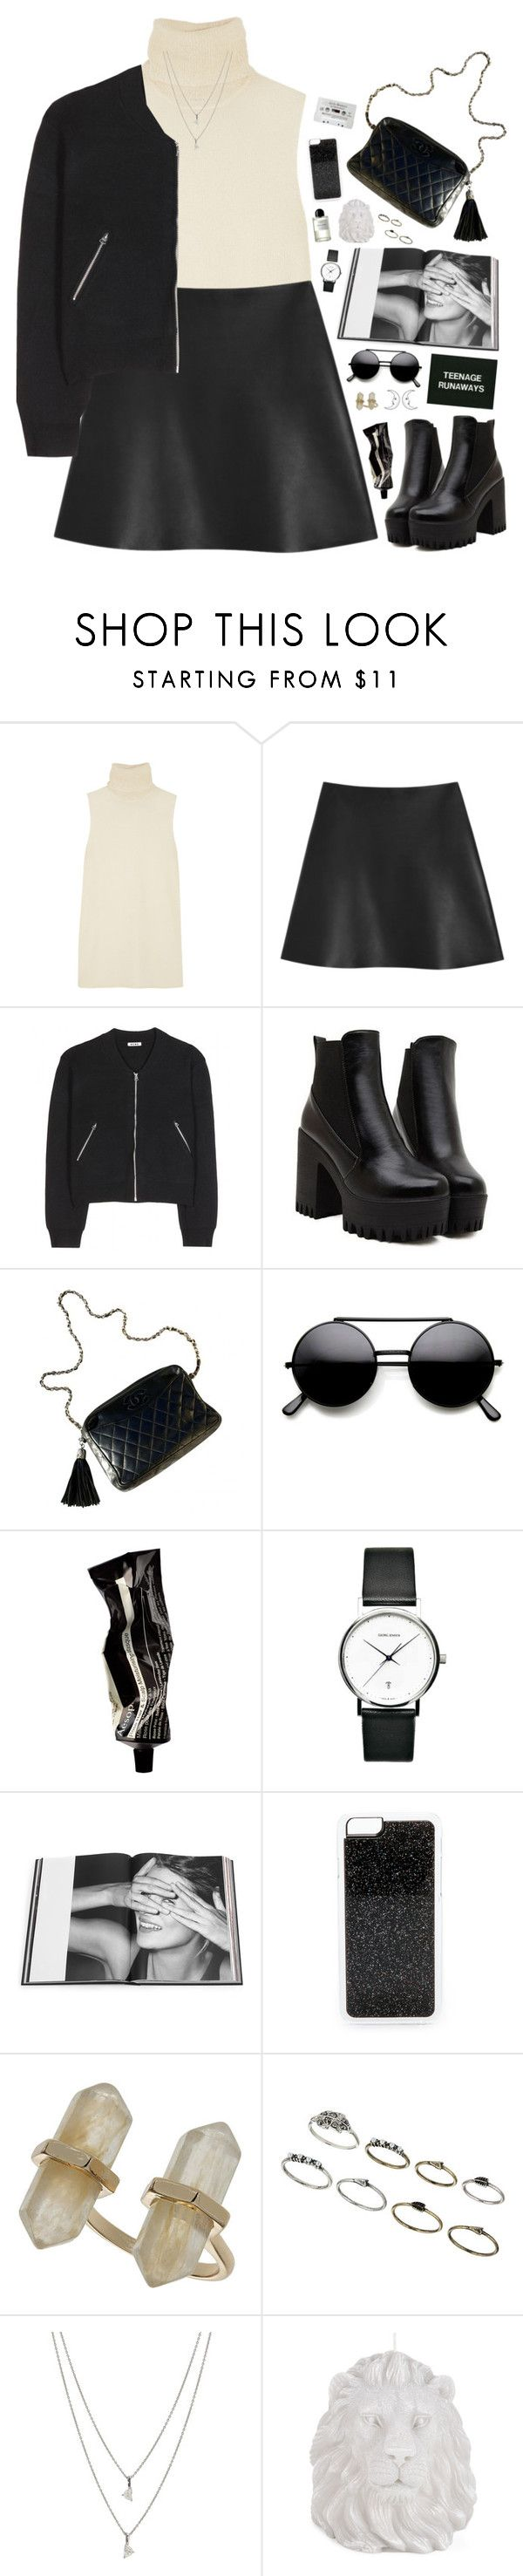 """You can get no love from me."" by bomlion on Polyvore featuring Helmut Lang, Mulberry, Acne Studios, Chanel, Aesop, Georg Jensen, Rizzoli Publishing, Zero Gravity, Topshop and Maison Margiela"